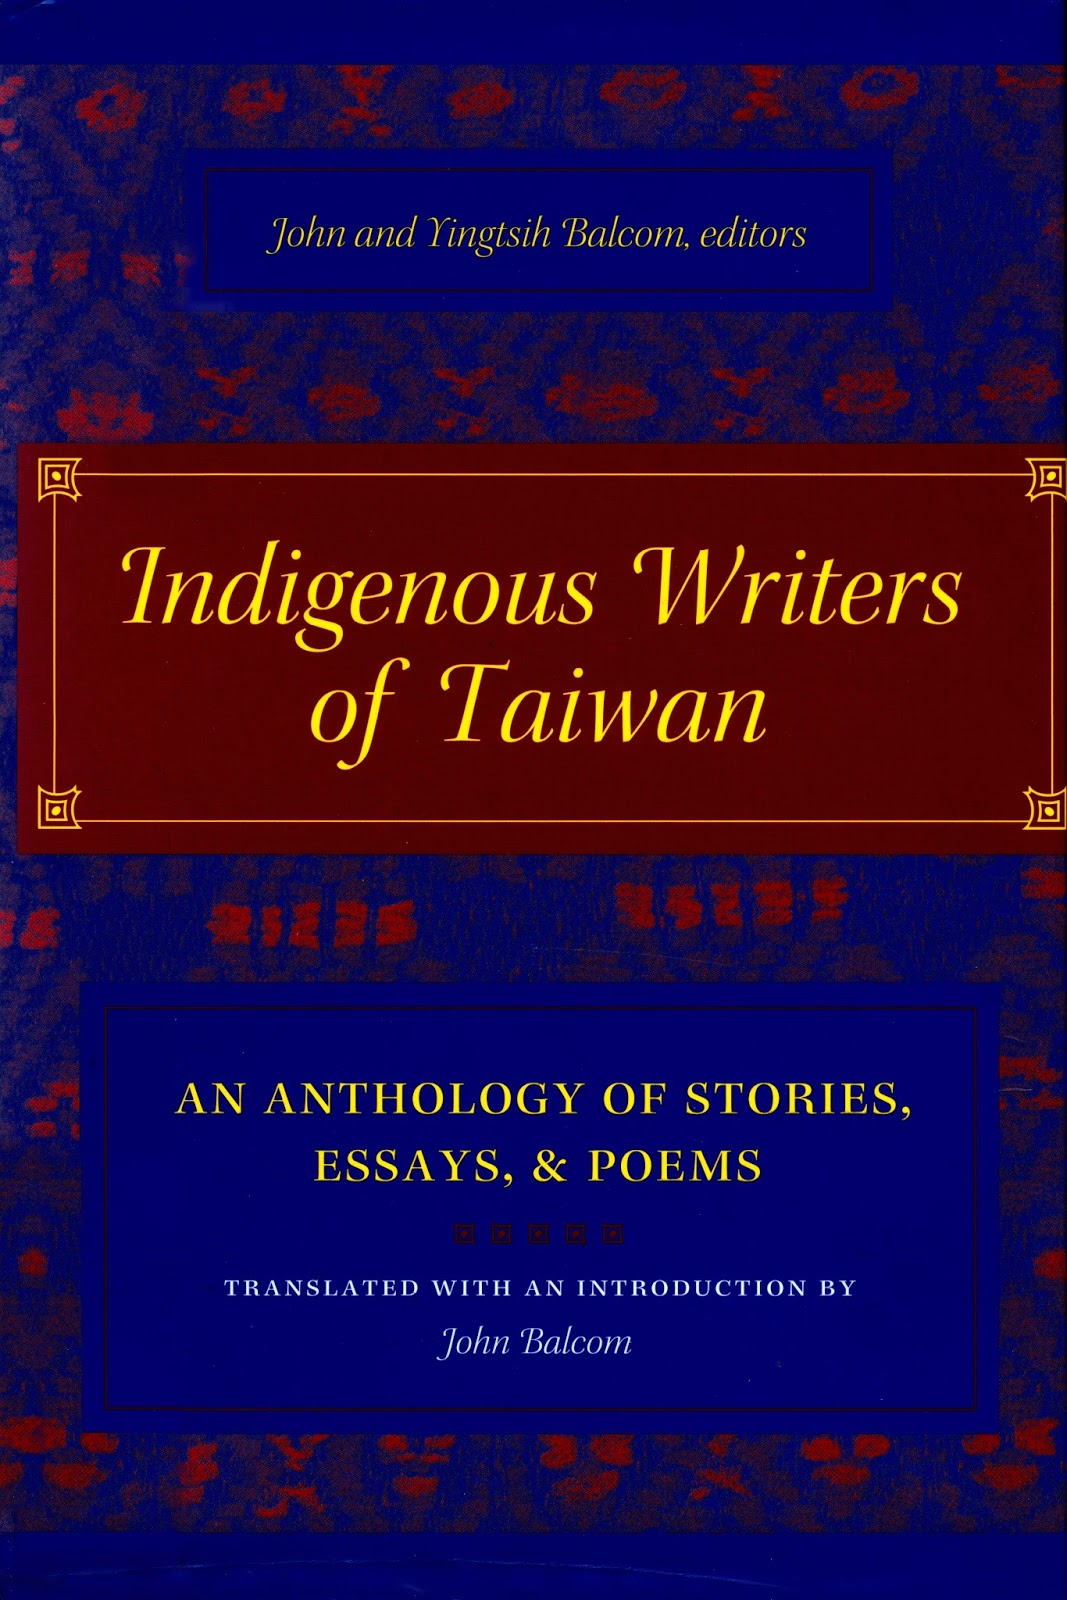 Indigenous Writers of Taiwan : An Anthology of Stories, Essays, & Poems